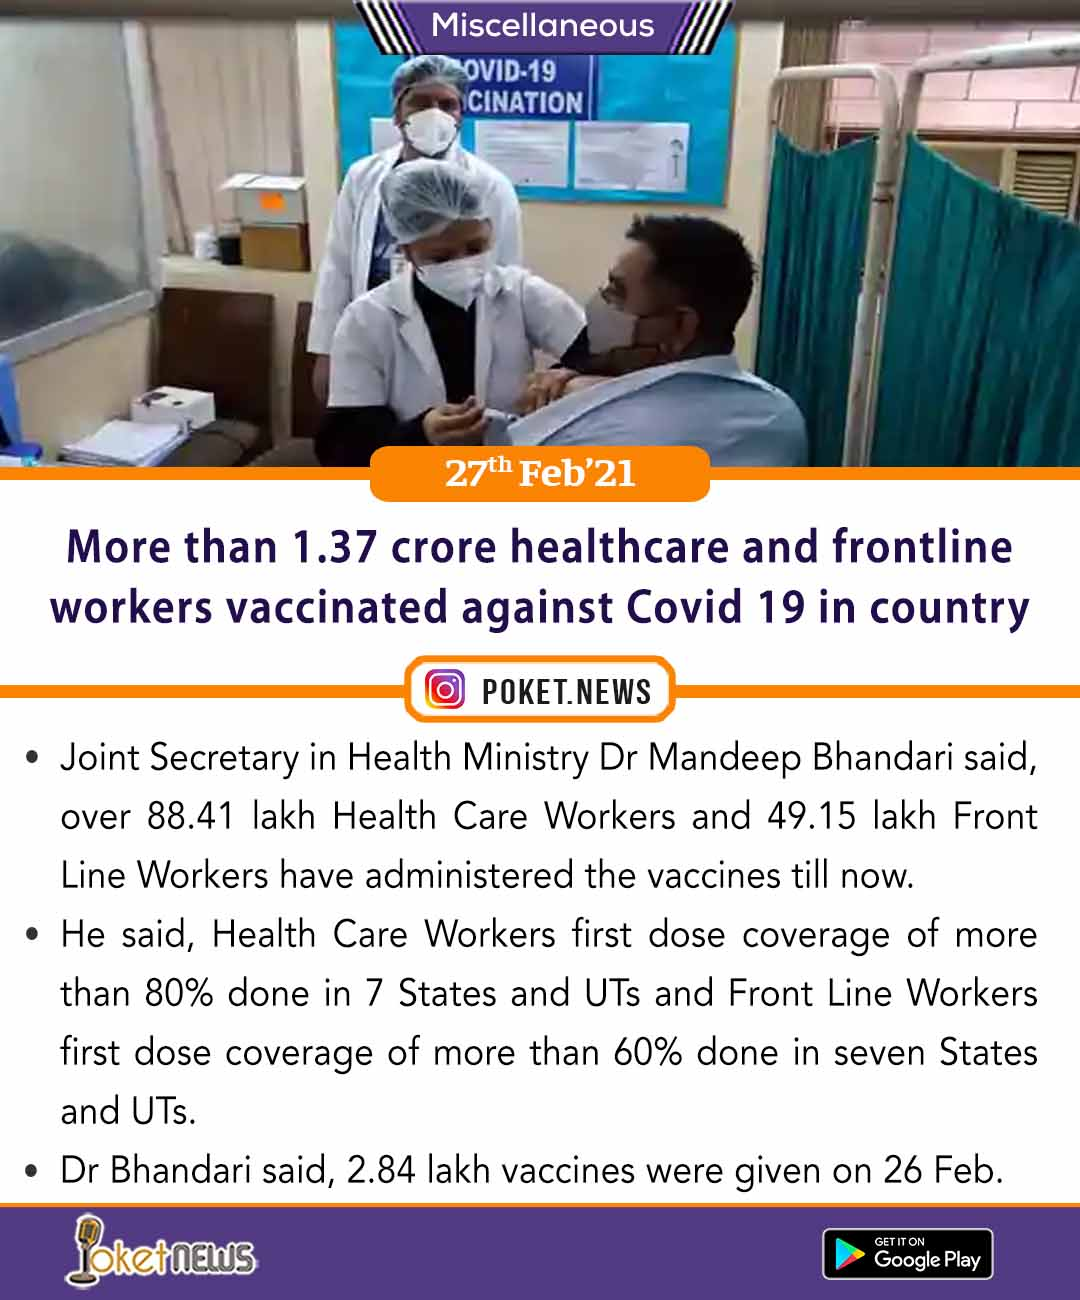 More than 1.37 crore healthcare and frontline workers vaccinated against Covid 19 in country